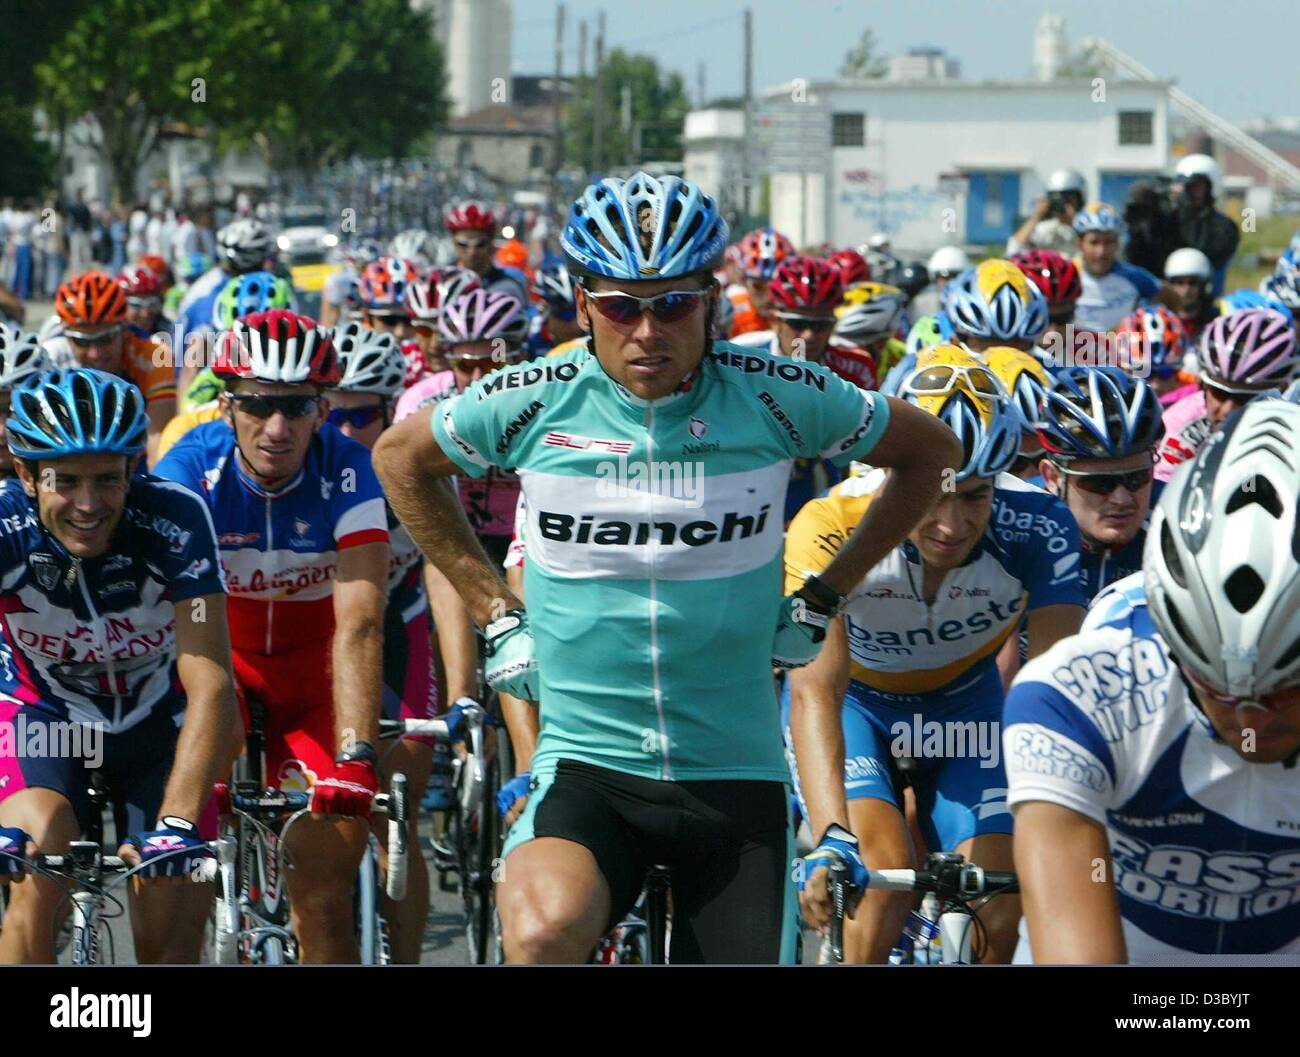 ... giving US Postal-Berry Floor s Lance Armstrong from t. D3BYTE (RM). (dpa)  - German Jan Ullrich (C) of Team Bianchi adjusts his jersey 6f3847133